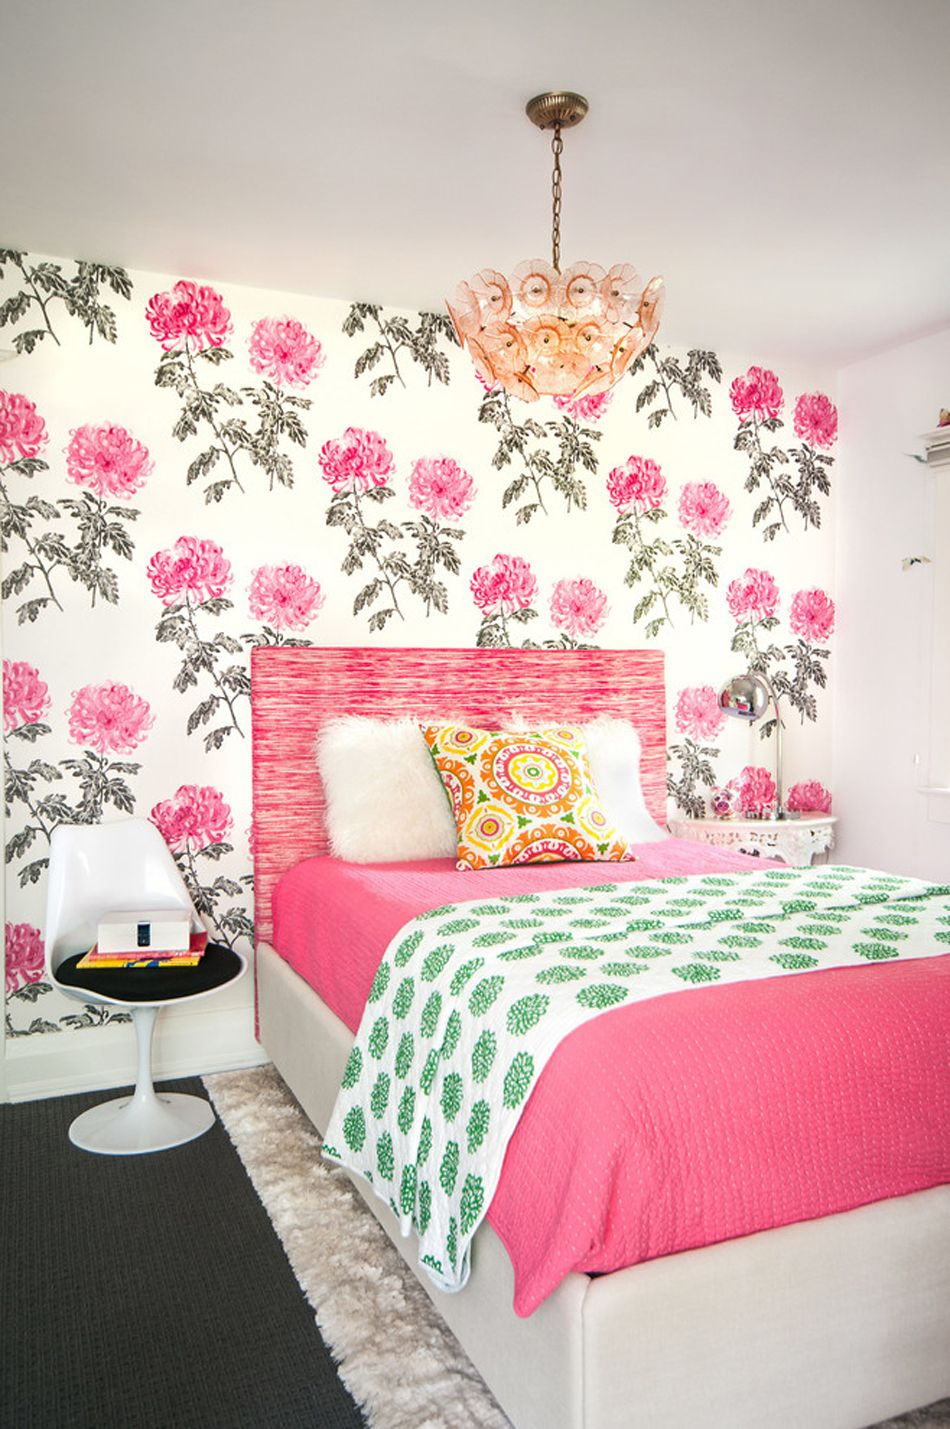 Hand Drawn Wallpaper for a feminine bedroom